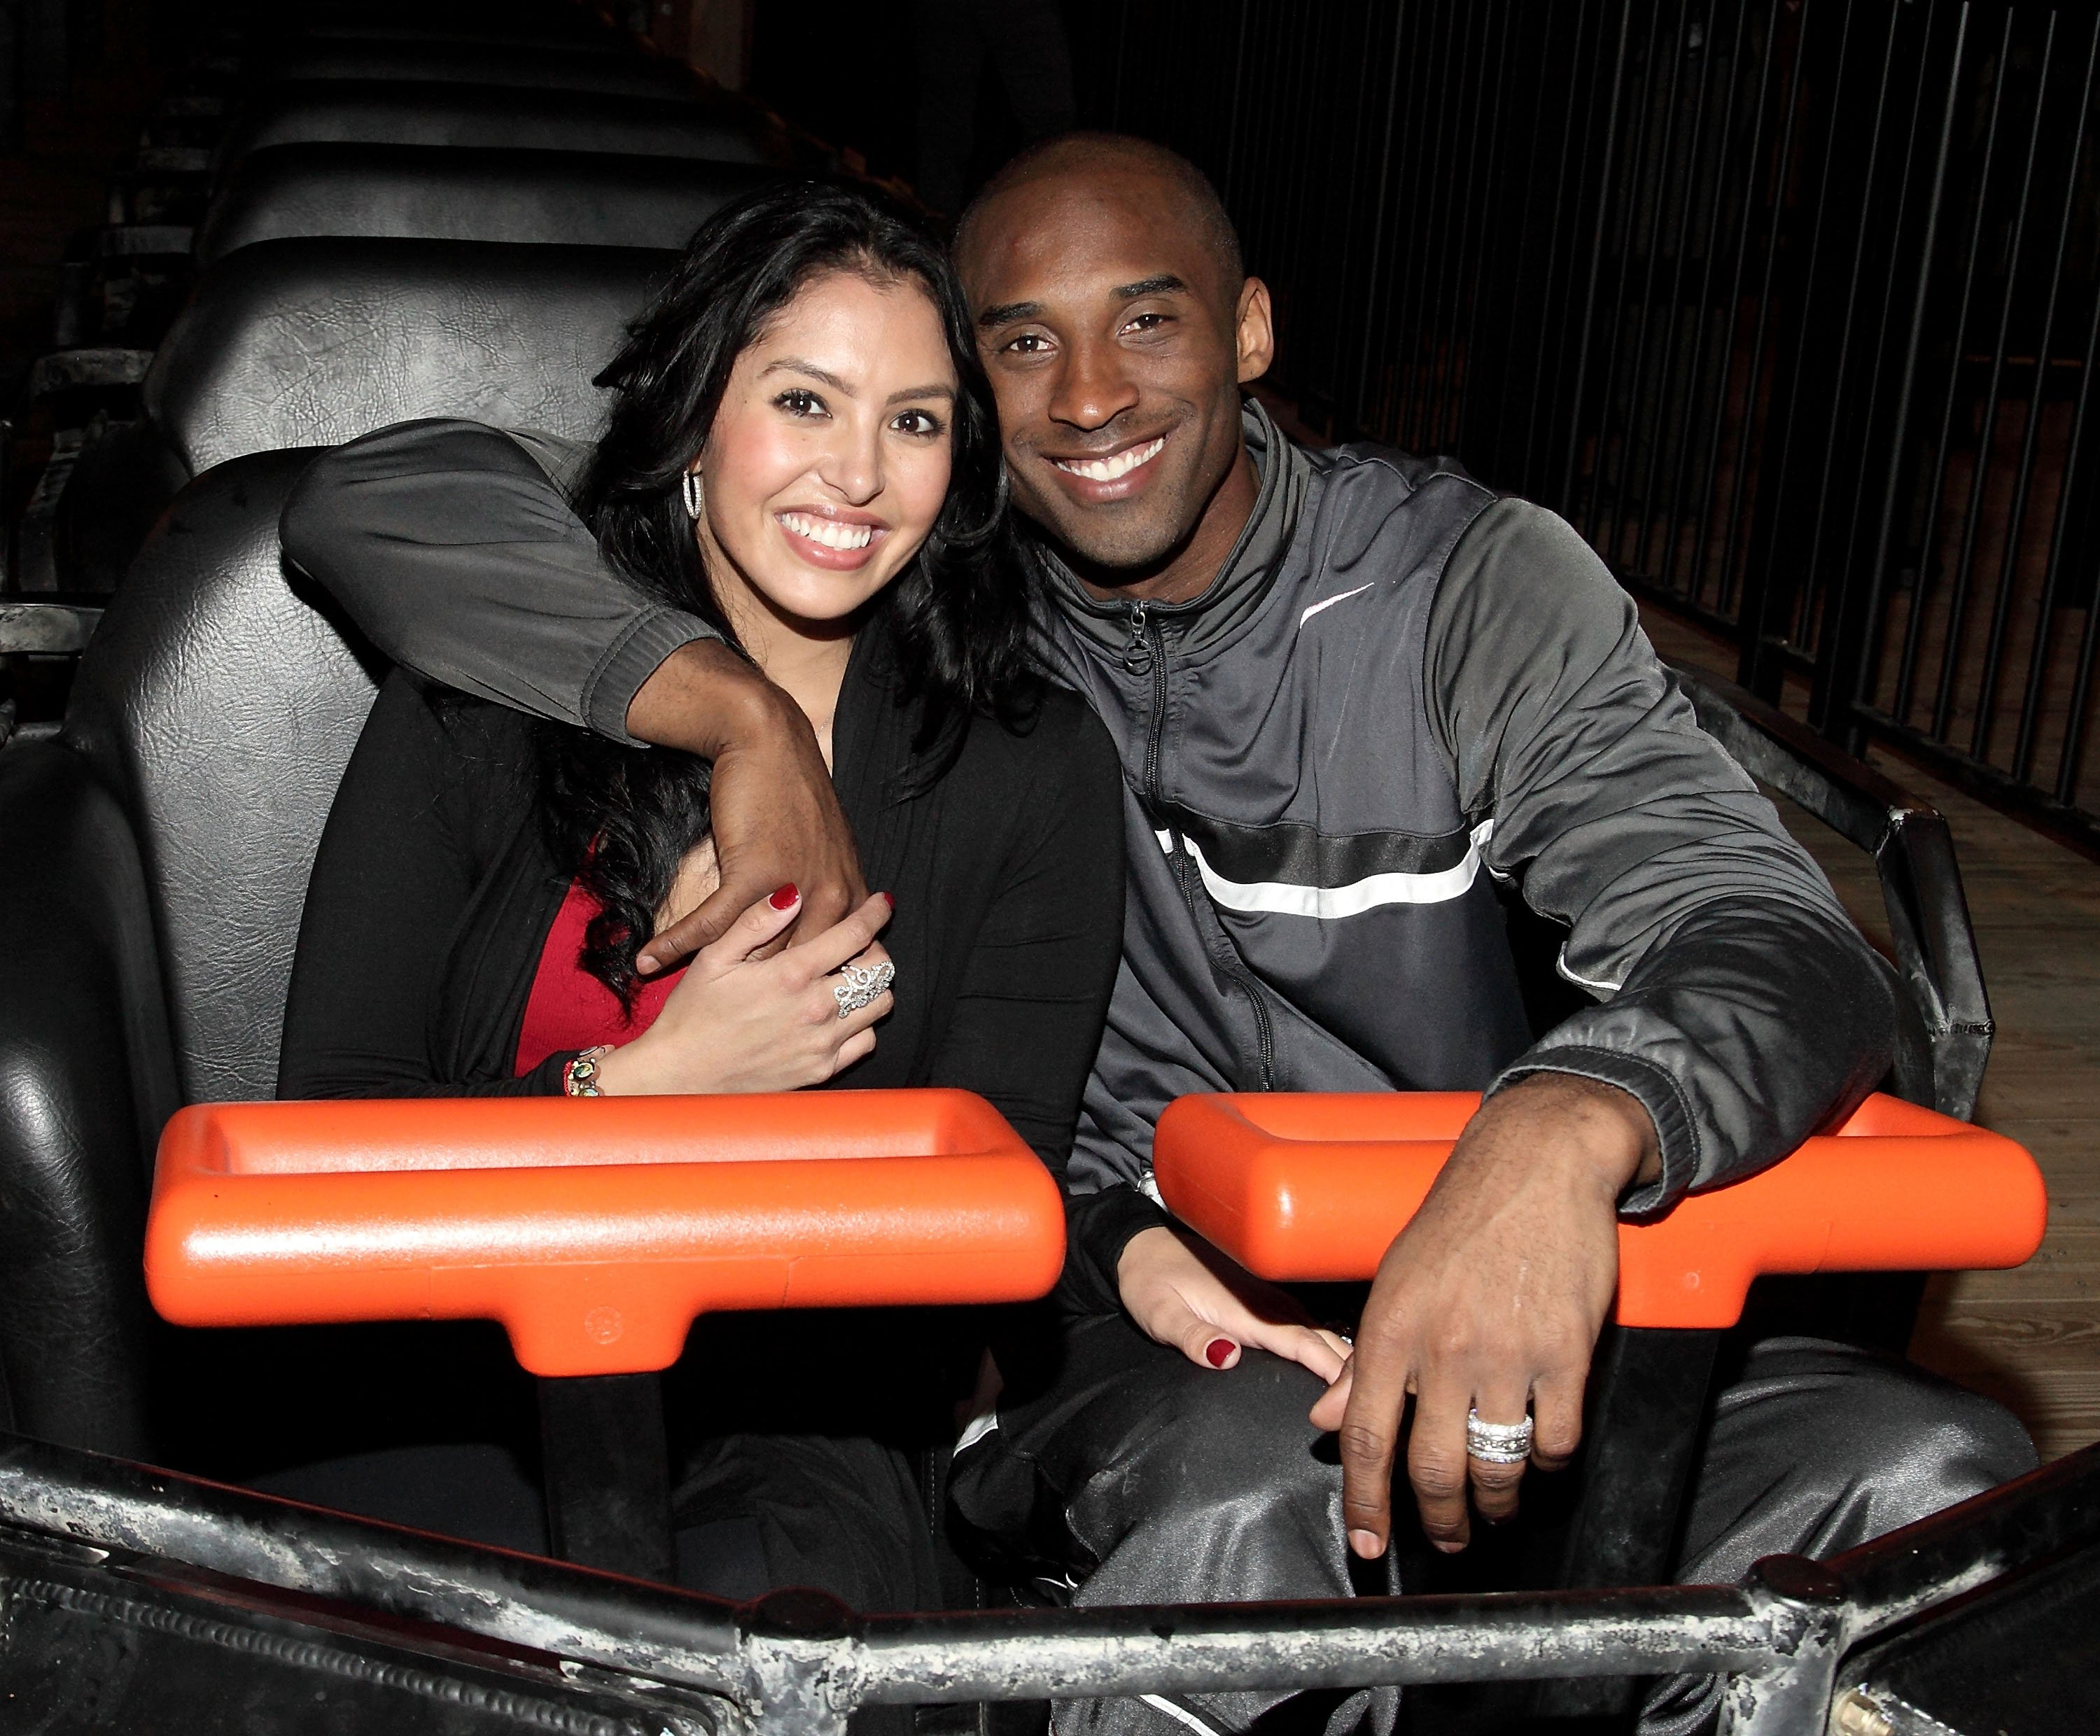 Kobe and Vanessa Bryant having a fun day out at The Ride at Six Flags Mountain on June 28, 2009. | Photo: Getty Images.